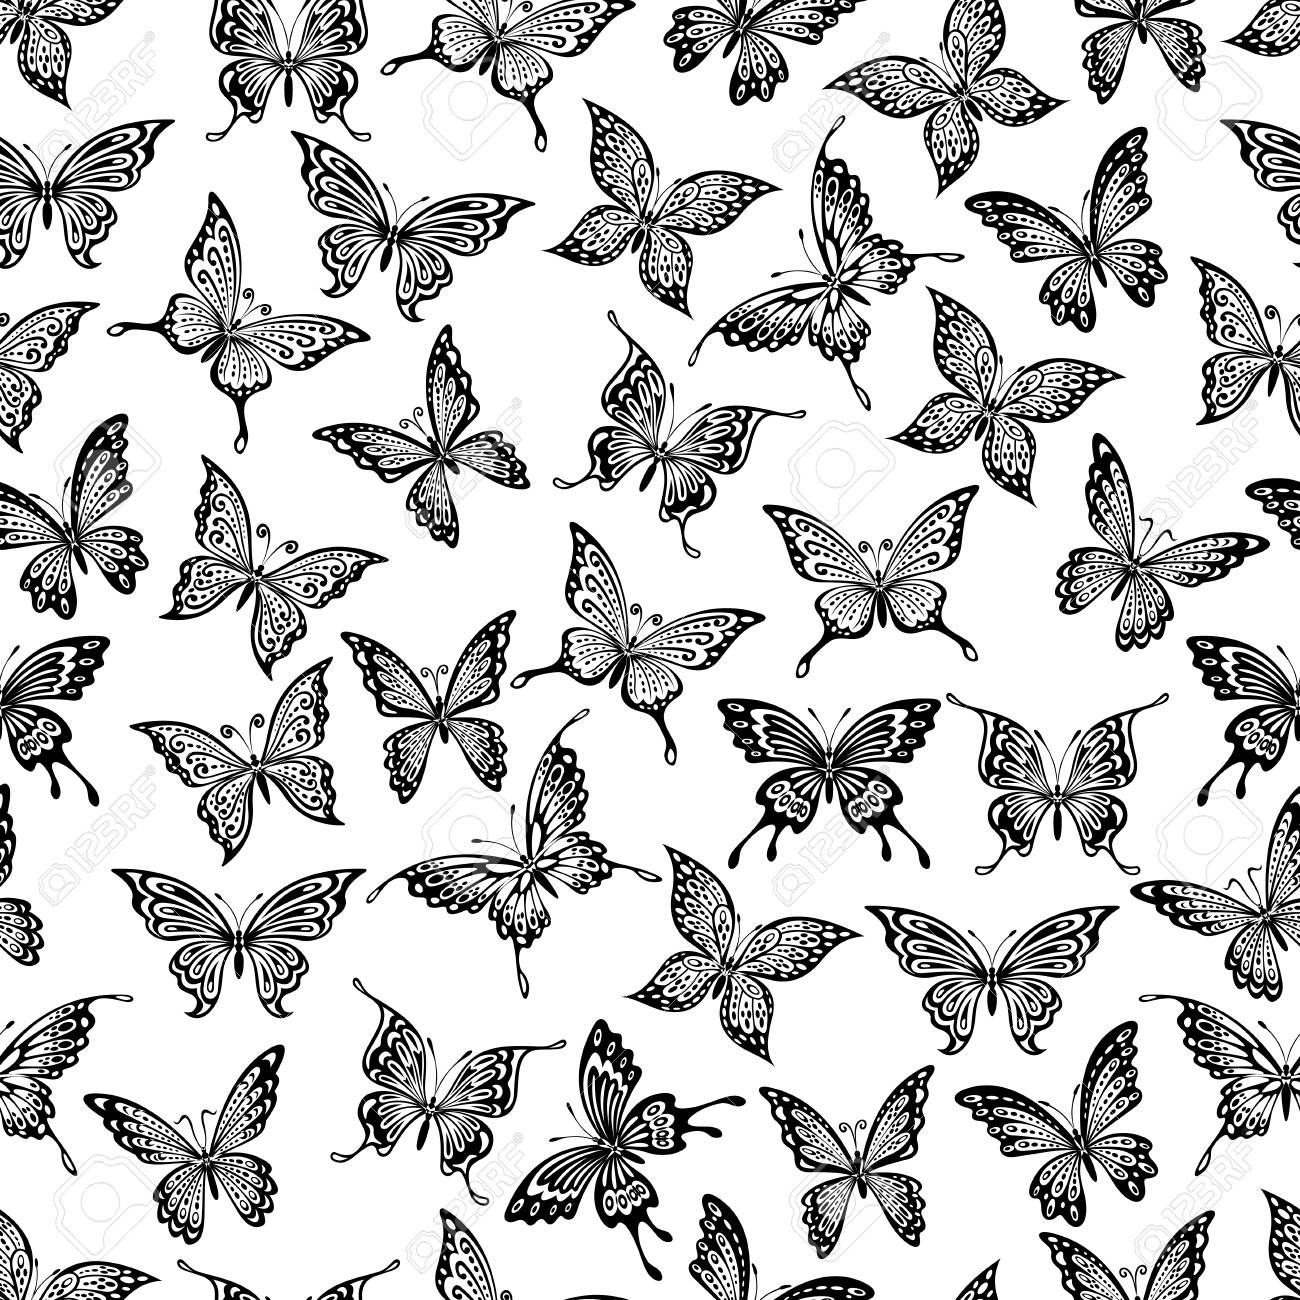 photo stock vector seamless pattern with black flying butterflies on white background for wallpaper or textile design